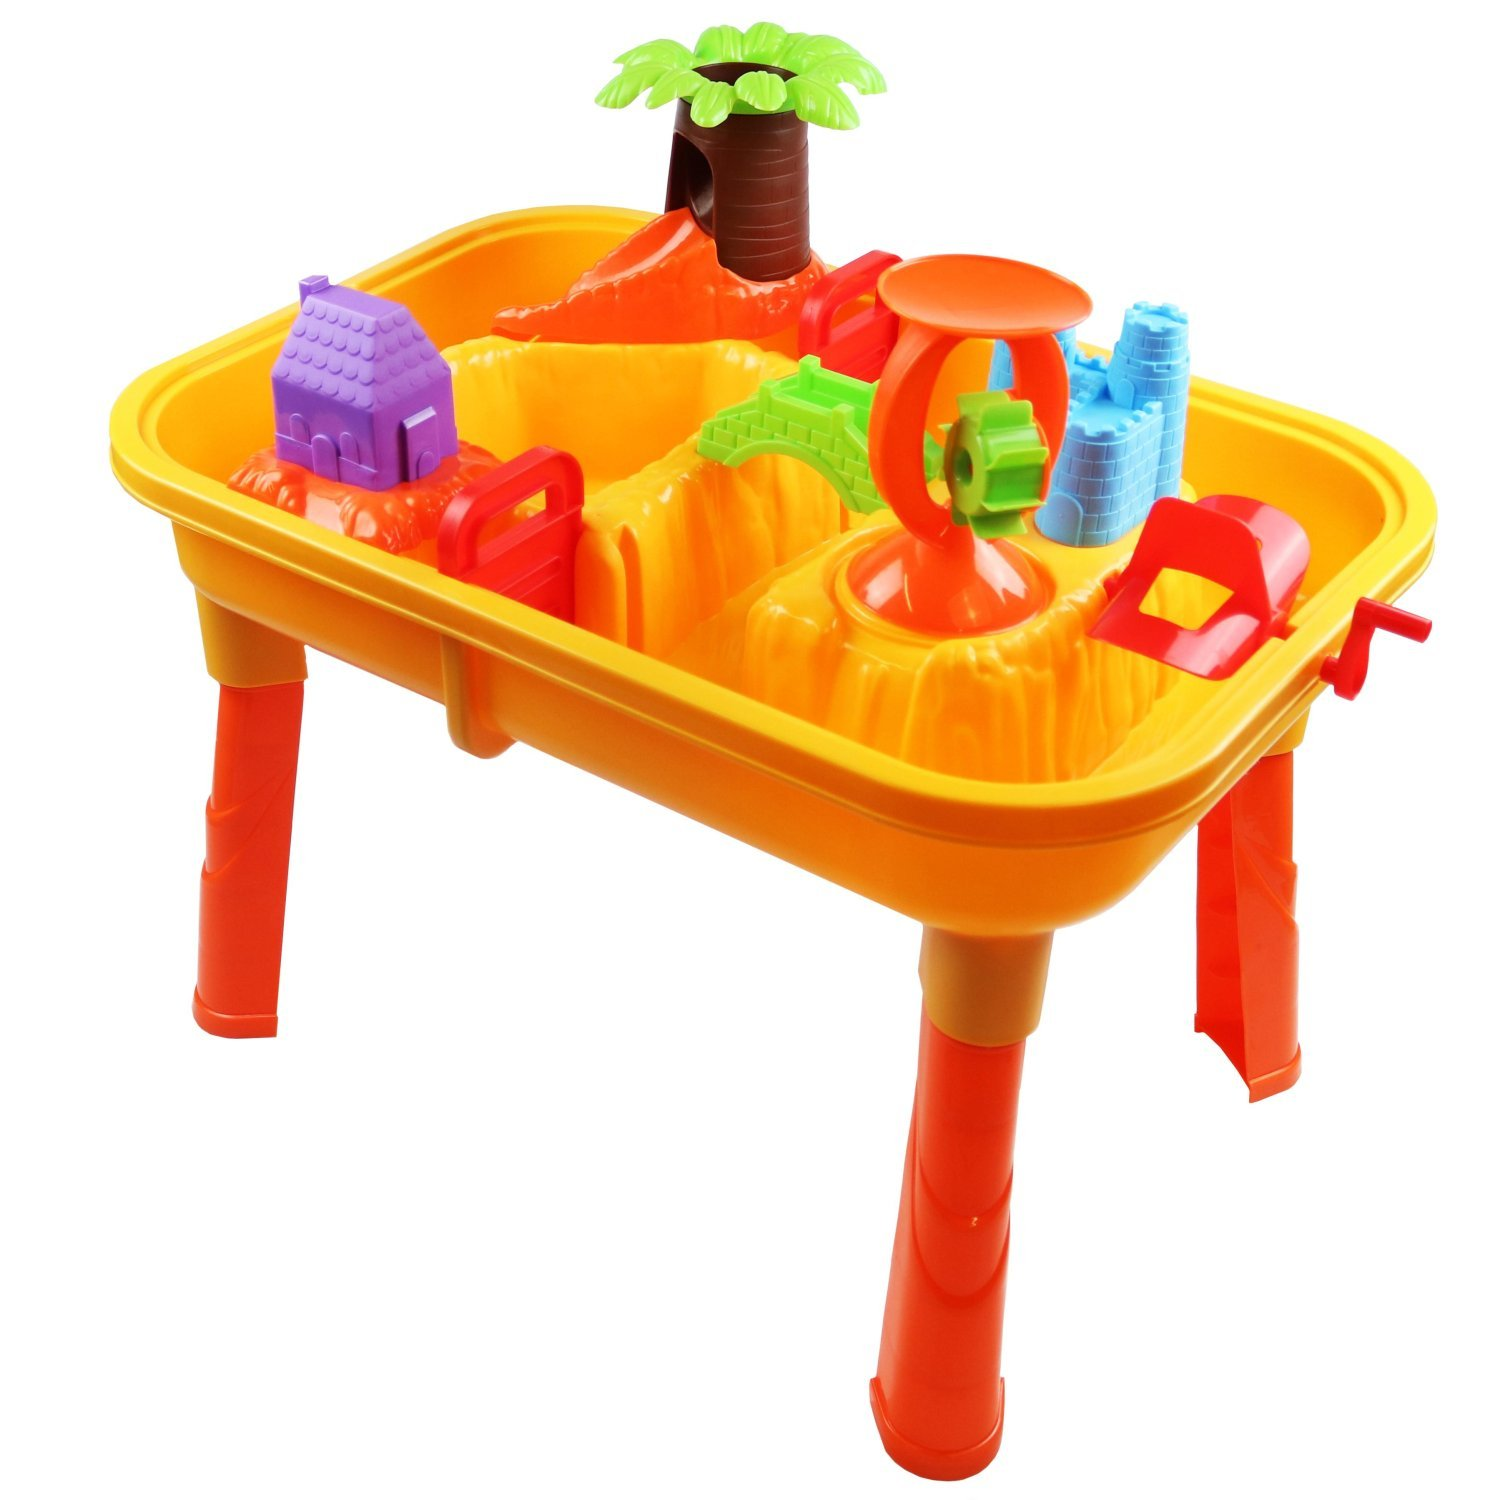 Best Water Toys For Kids : Toddlers kids childrens sand water table toy with